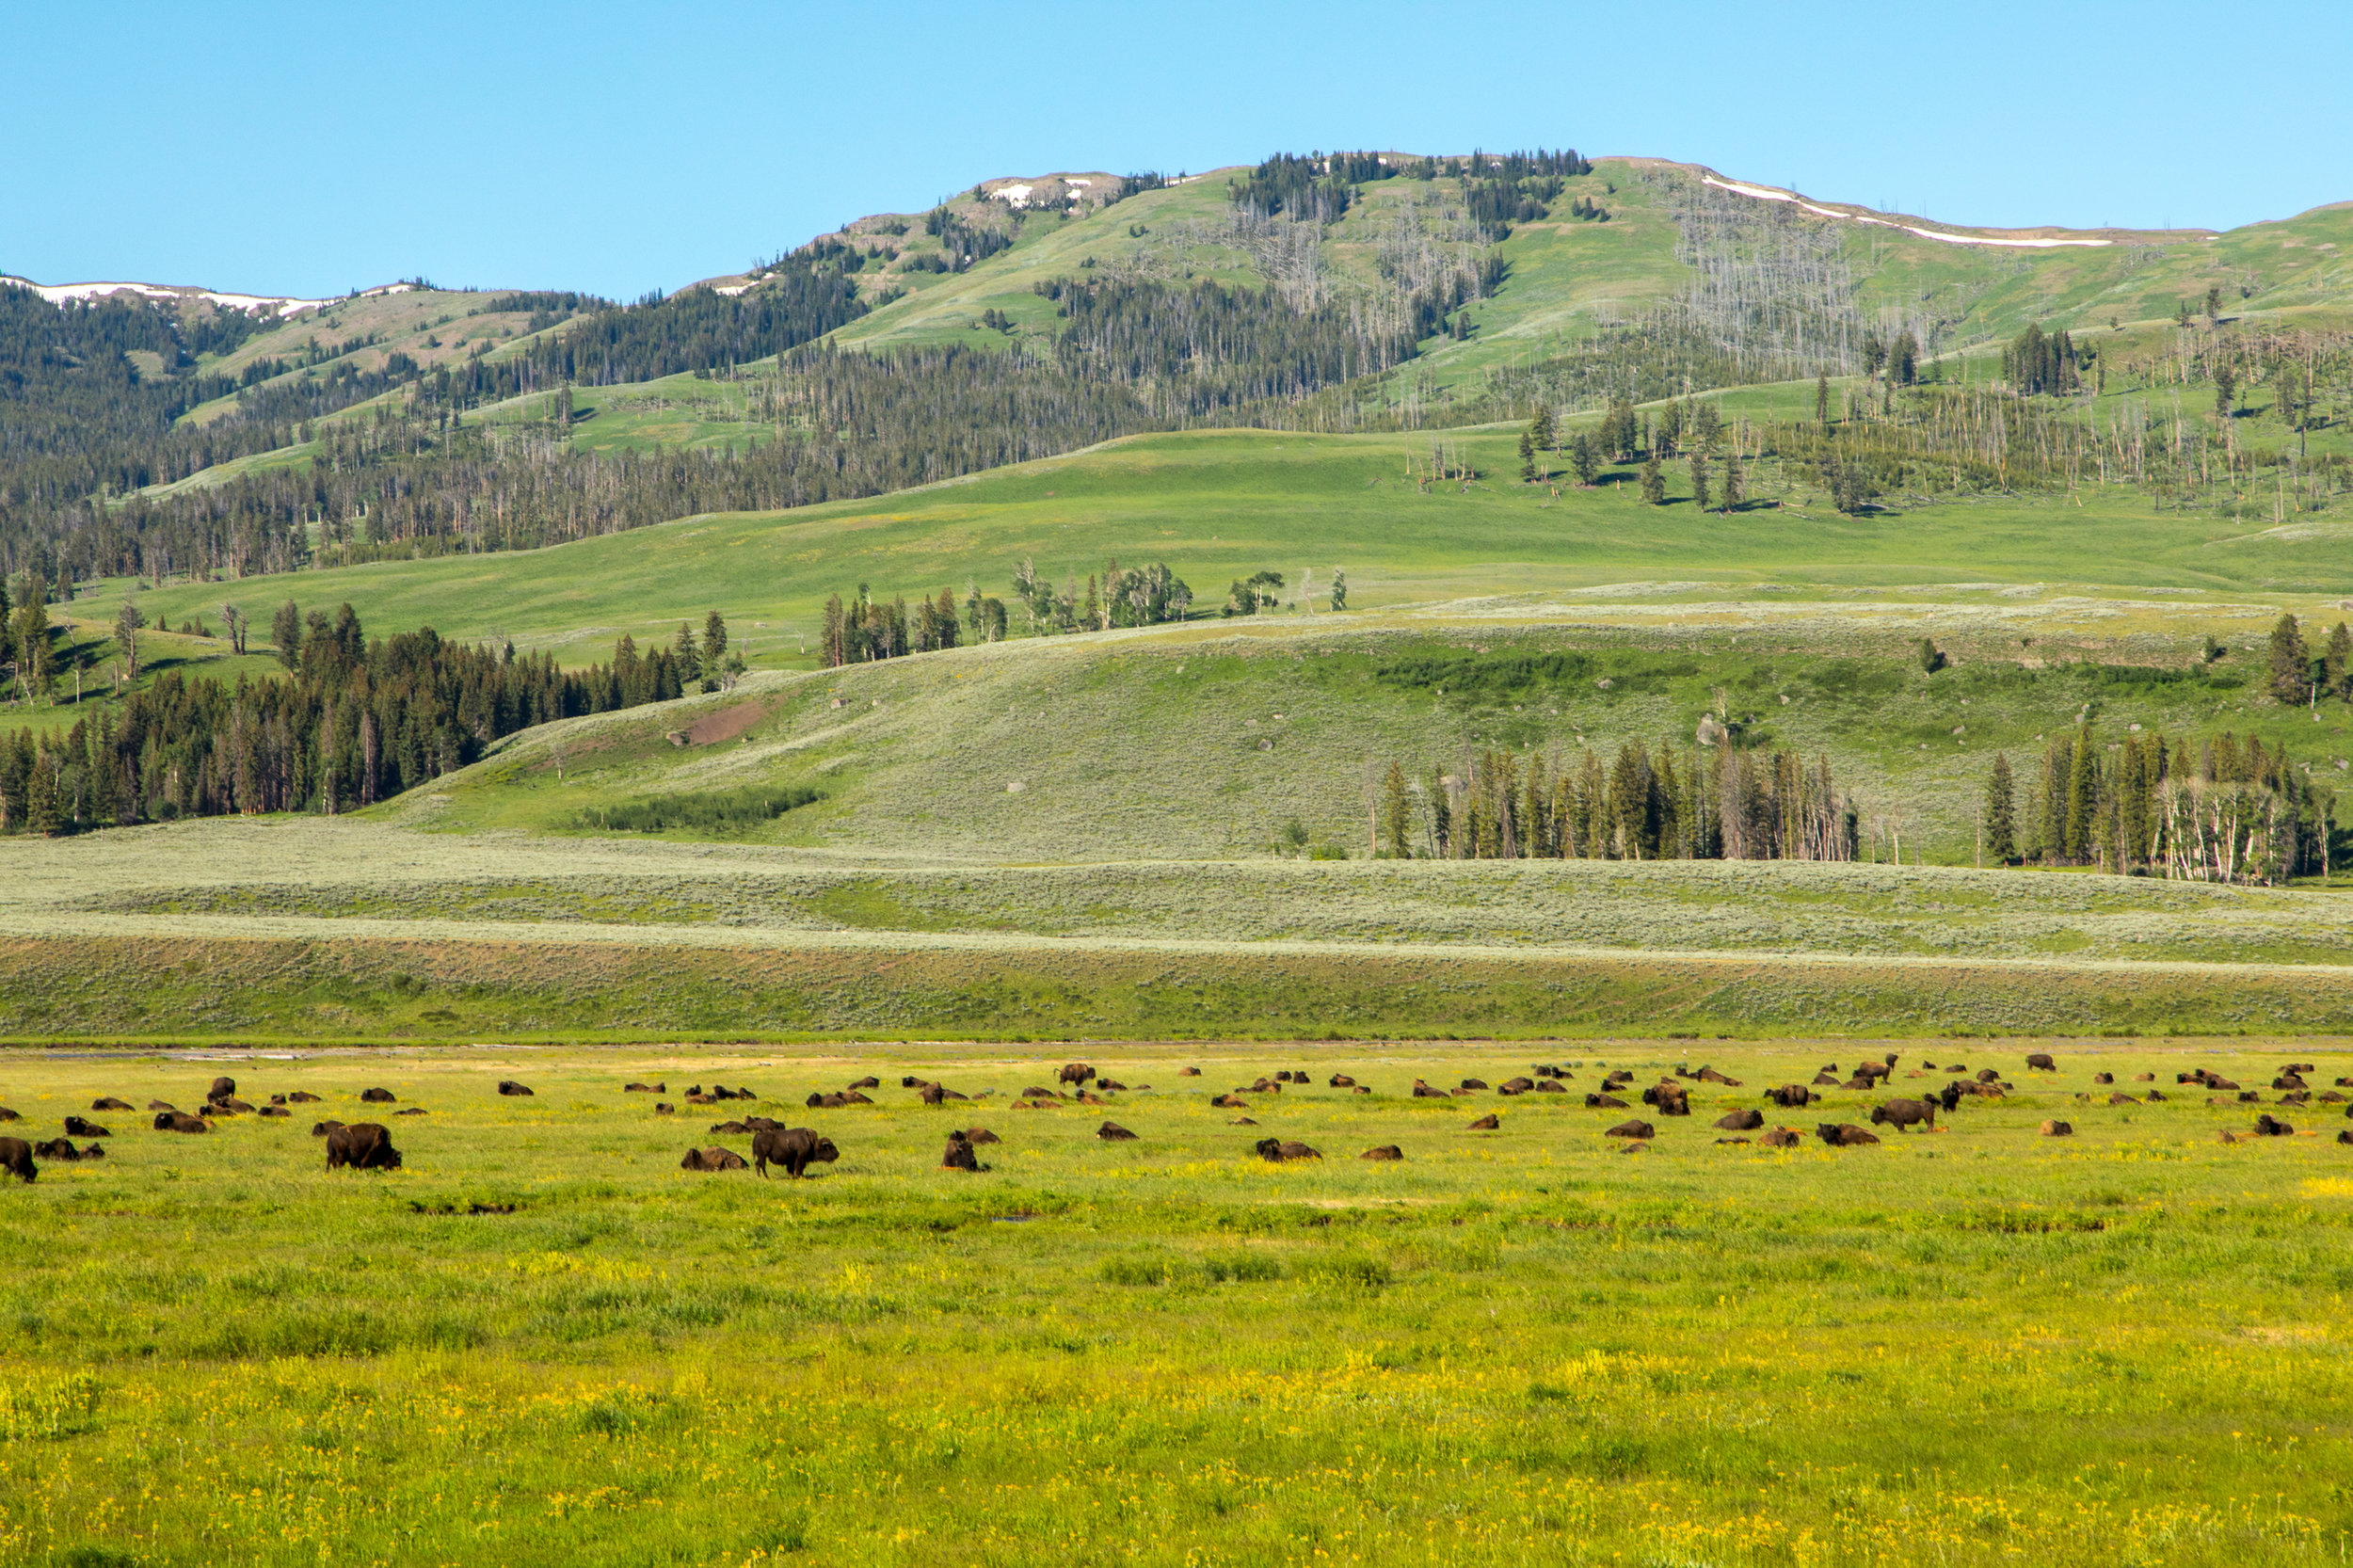 Lamar Valley, Yellowstone National Park, Image # 6909